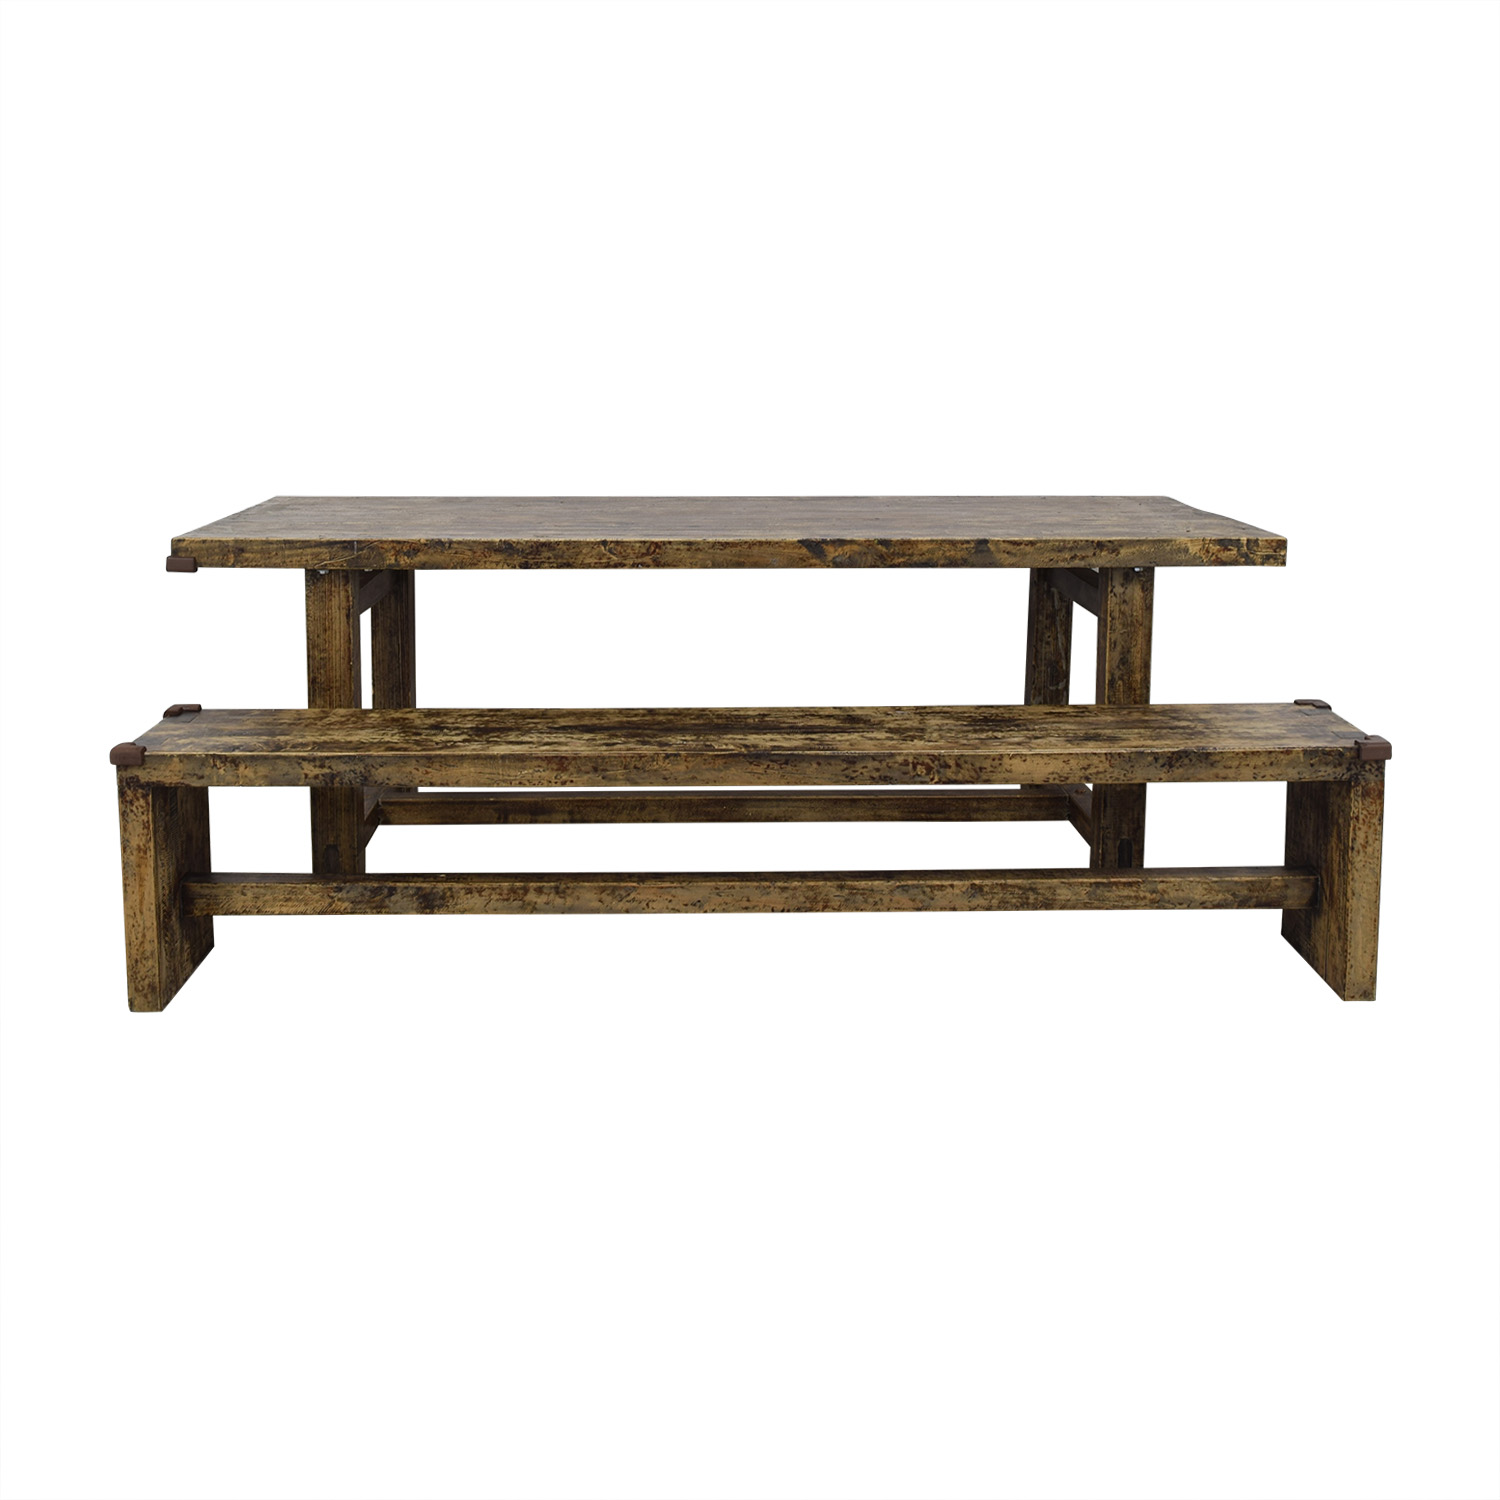 Rustic Farm Dining Table with Bench sale